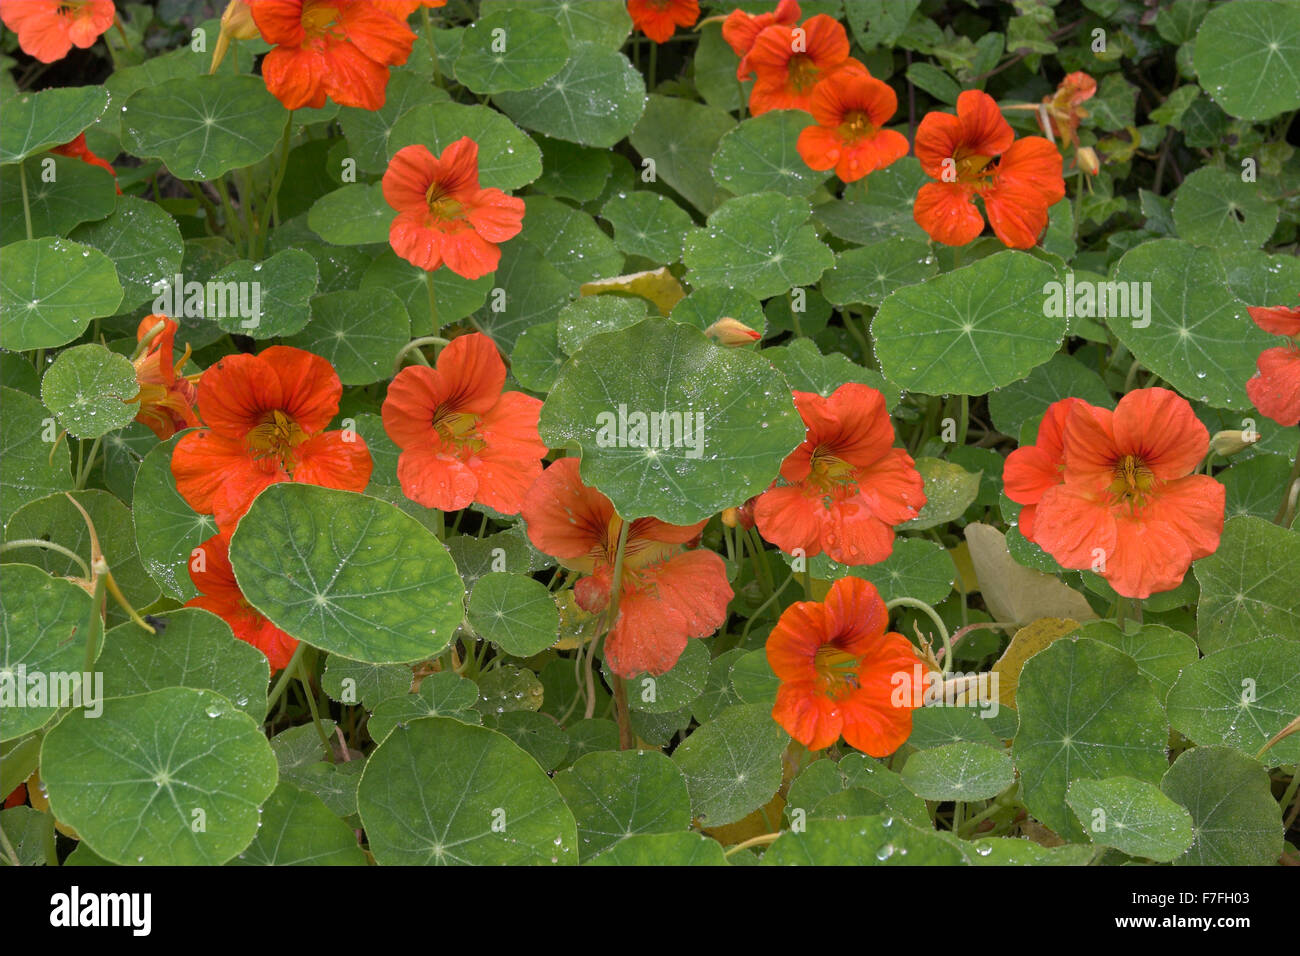 nasturtium capucine gro e kapuzinerkresse echte kapuziner kresse stock photo royalty free. Black Bedroom Furniture Sets. Home Design Ideas